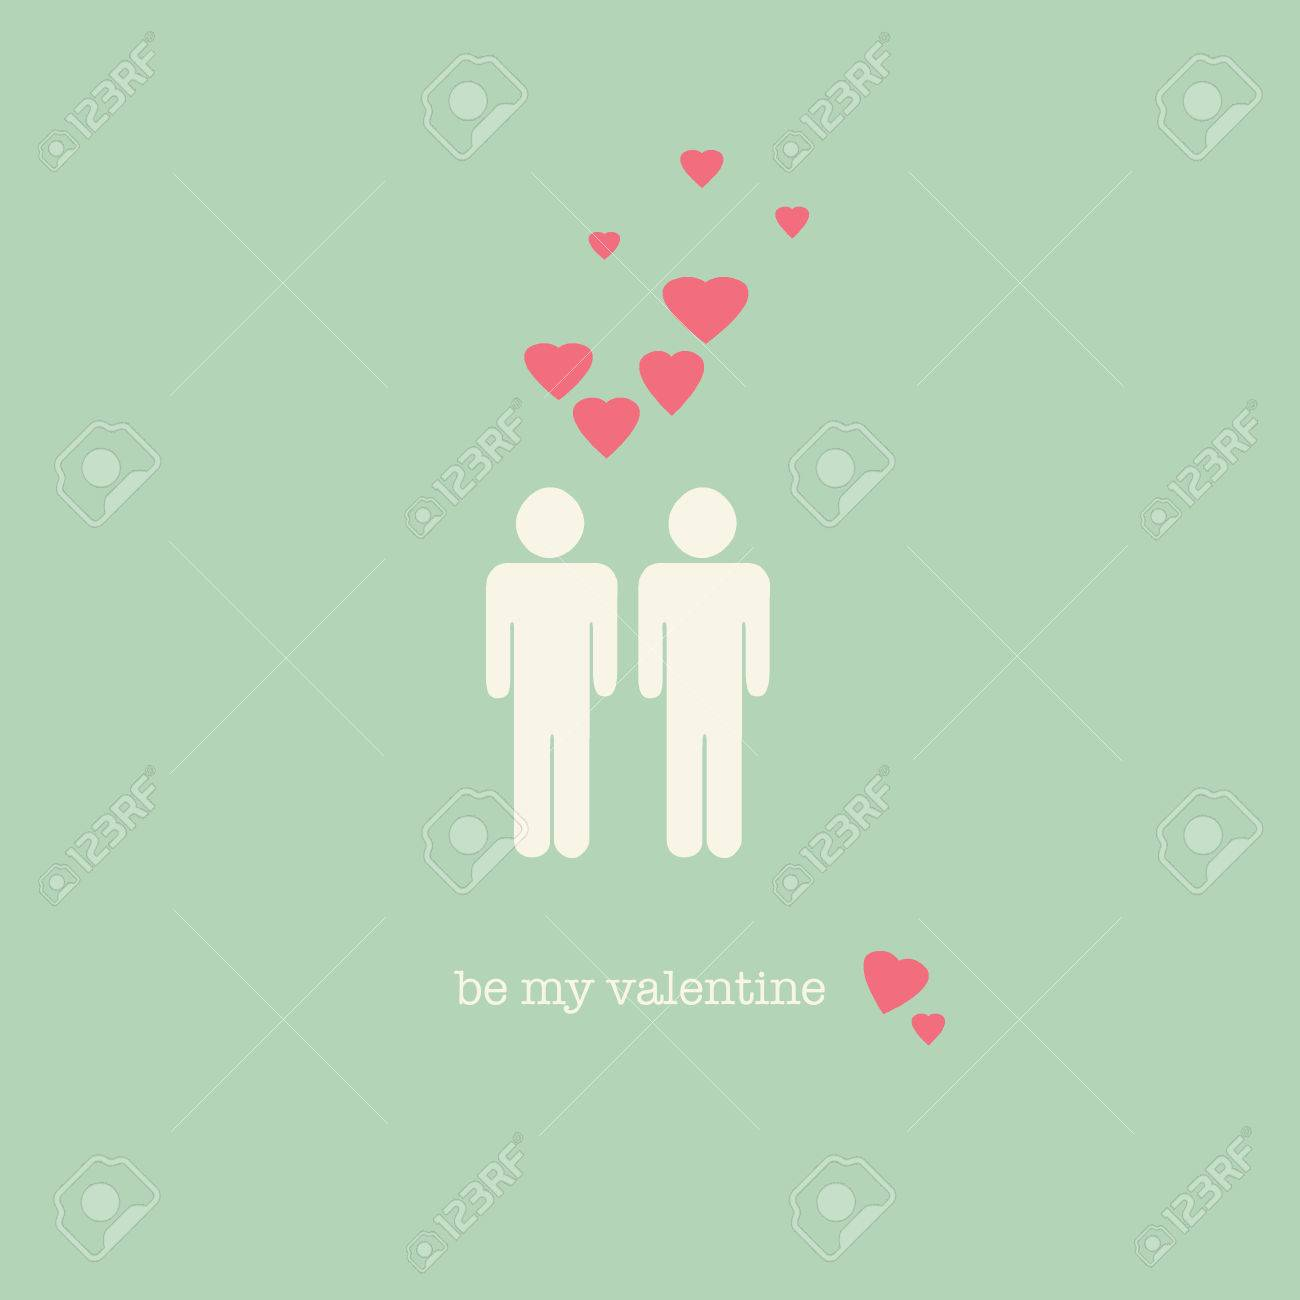 a sweet vintage gay valentines day card stock photo 35789572 gay valentines day cards